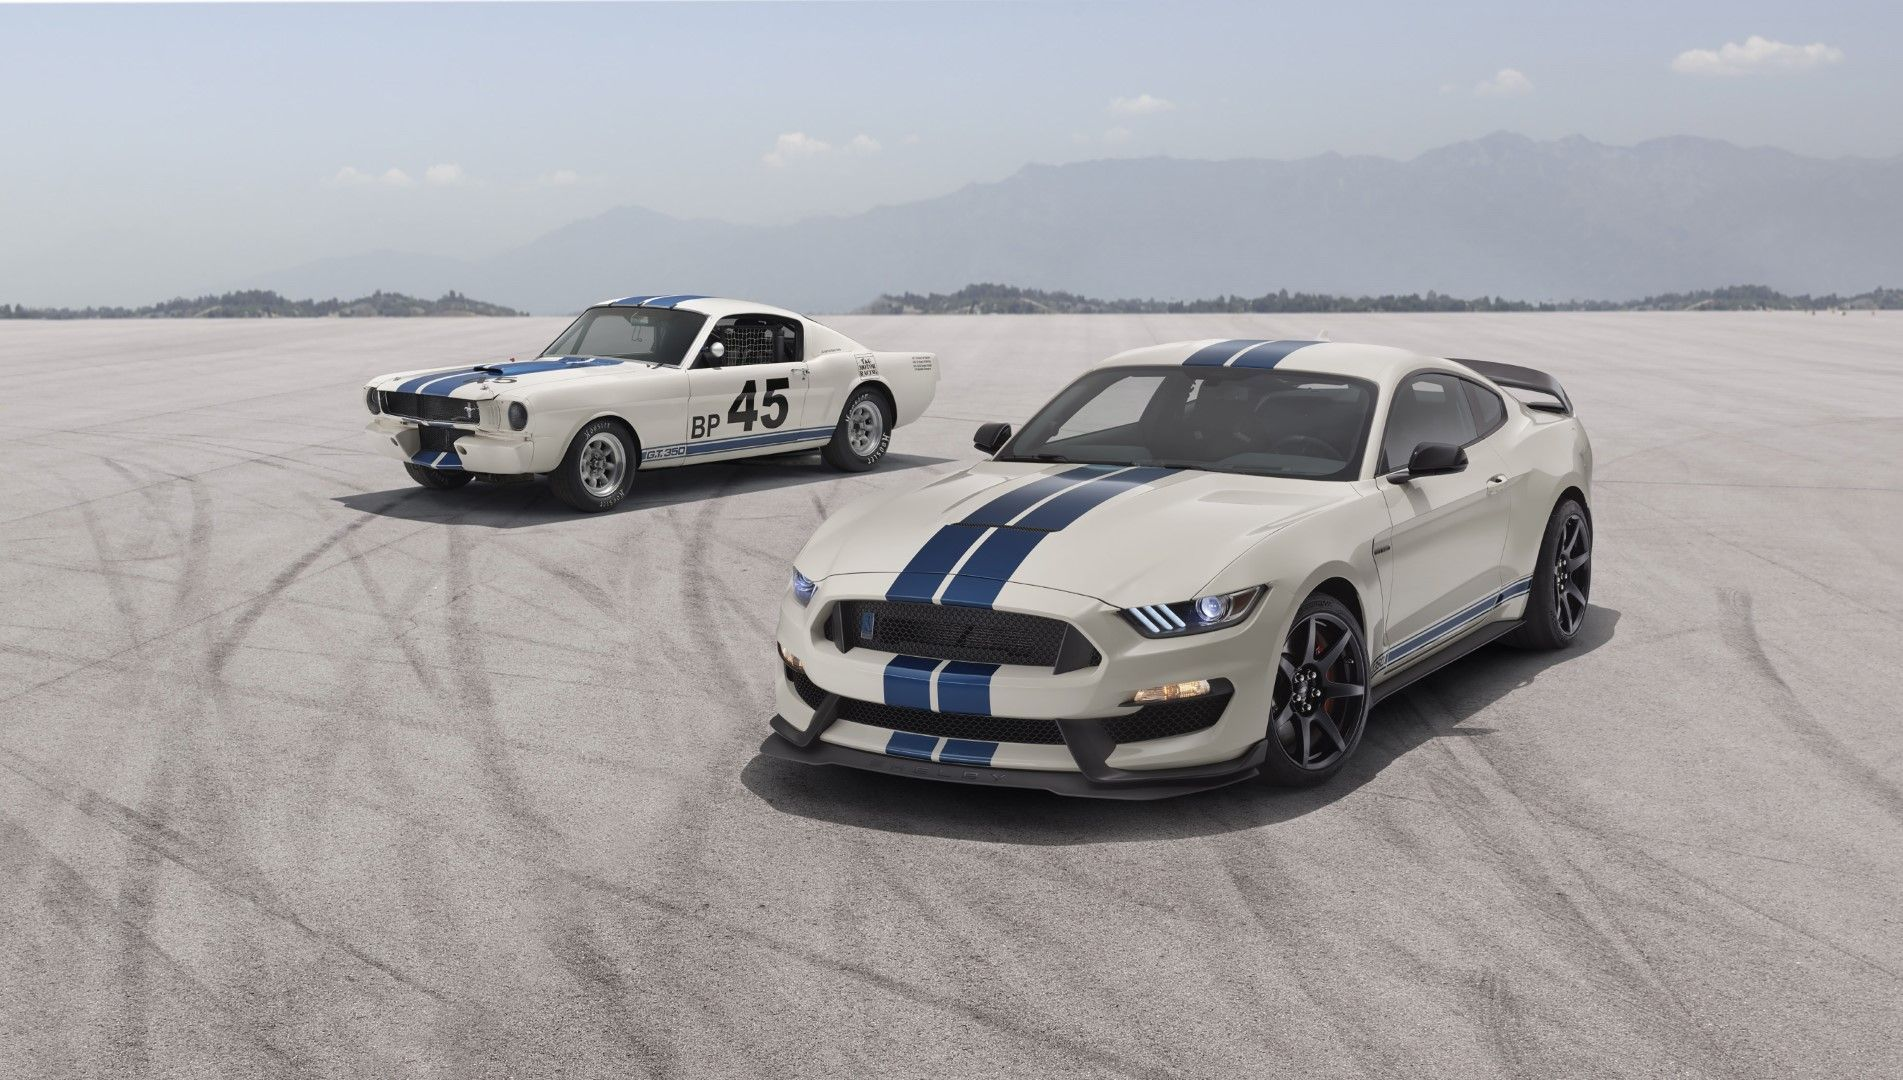 2020 Mustang Shelby Gt350 And Gt350r Available Heritage Edition